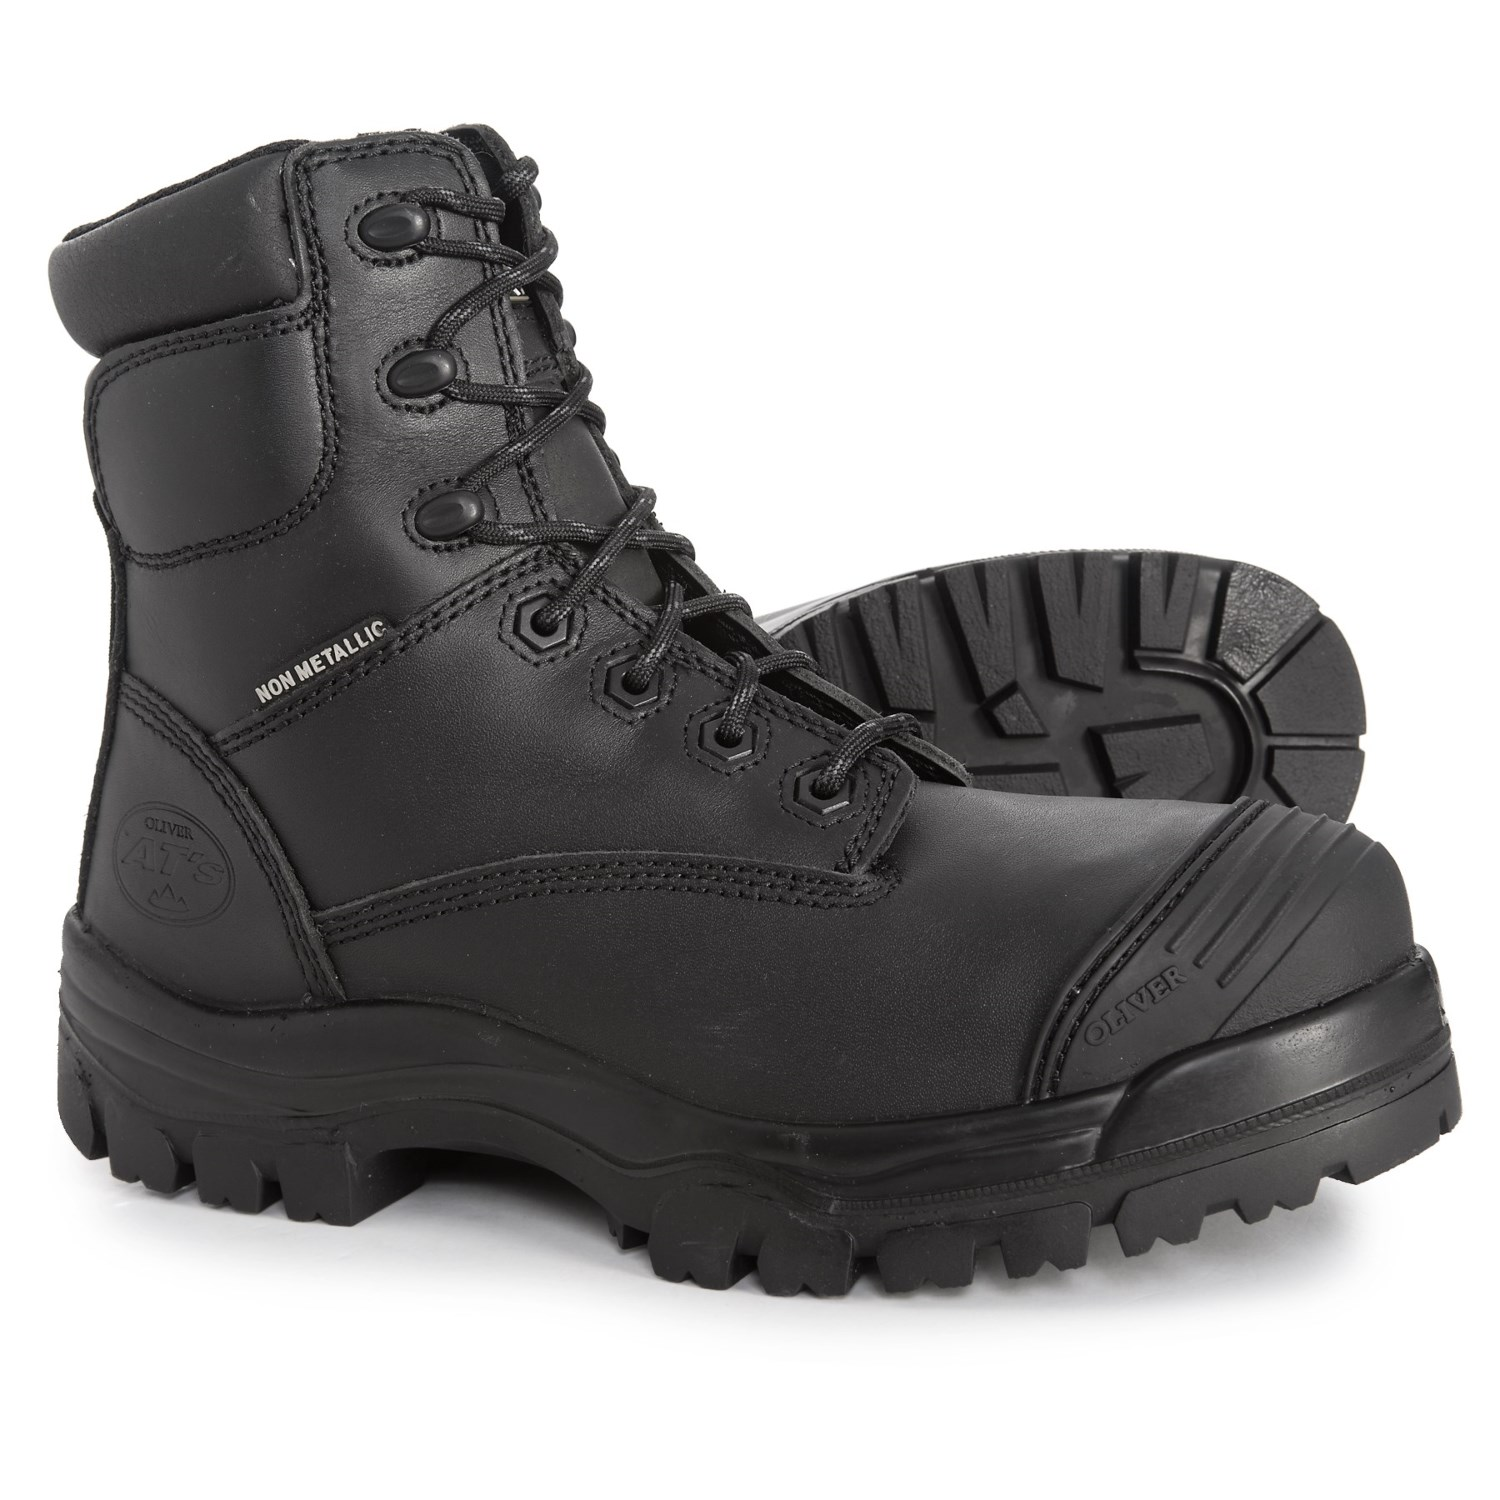 d460e5e8b67 Oliver Zip-Up Work Boots - Composite Safety Toe (For Men)